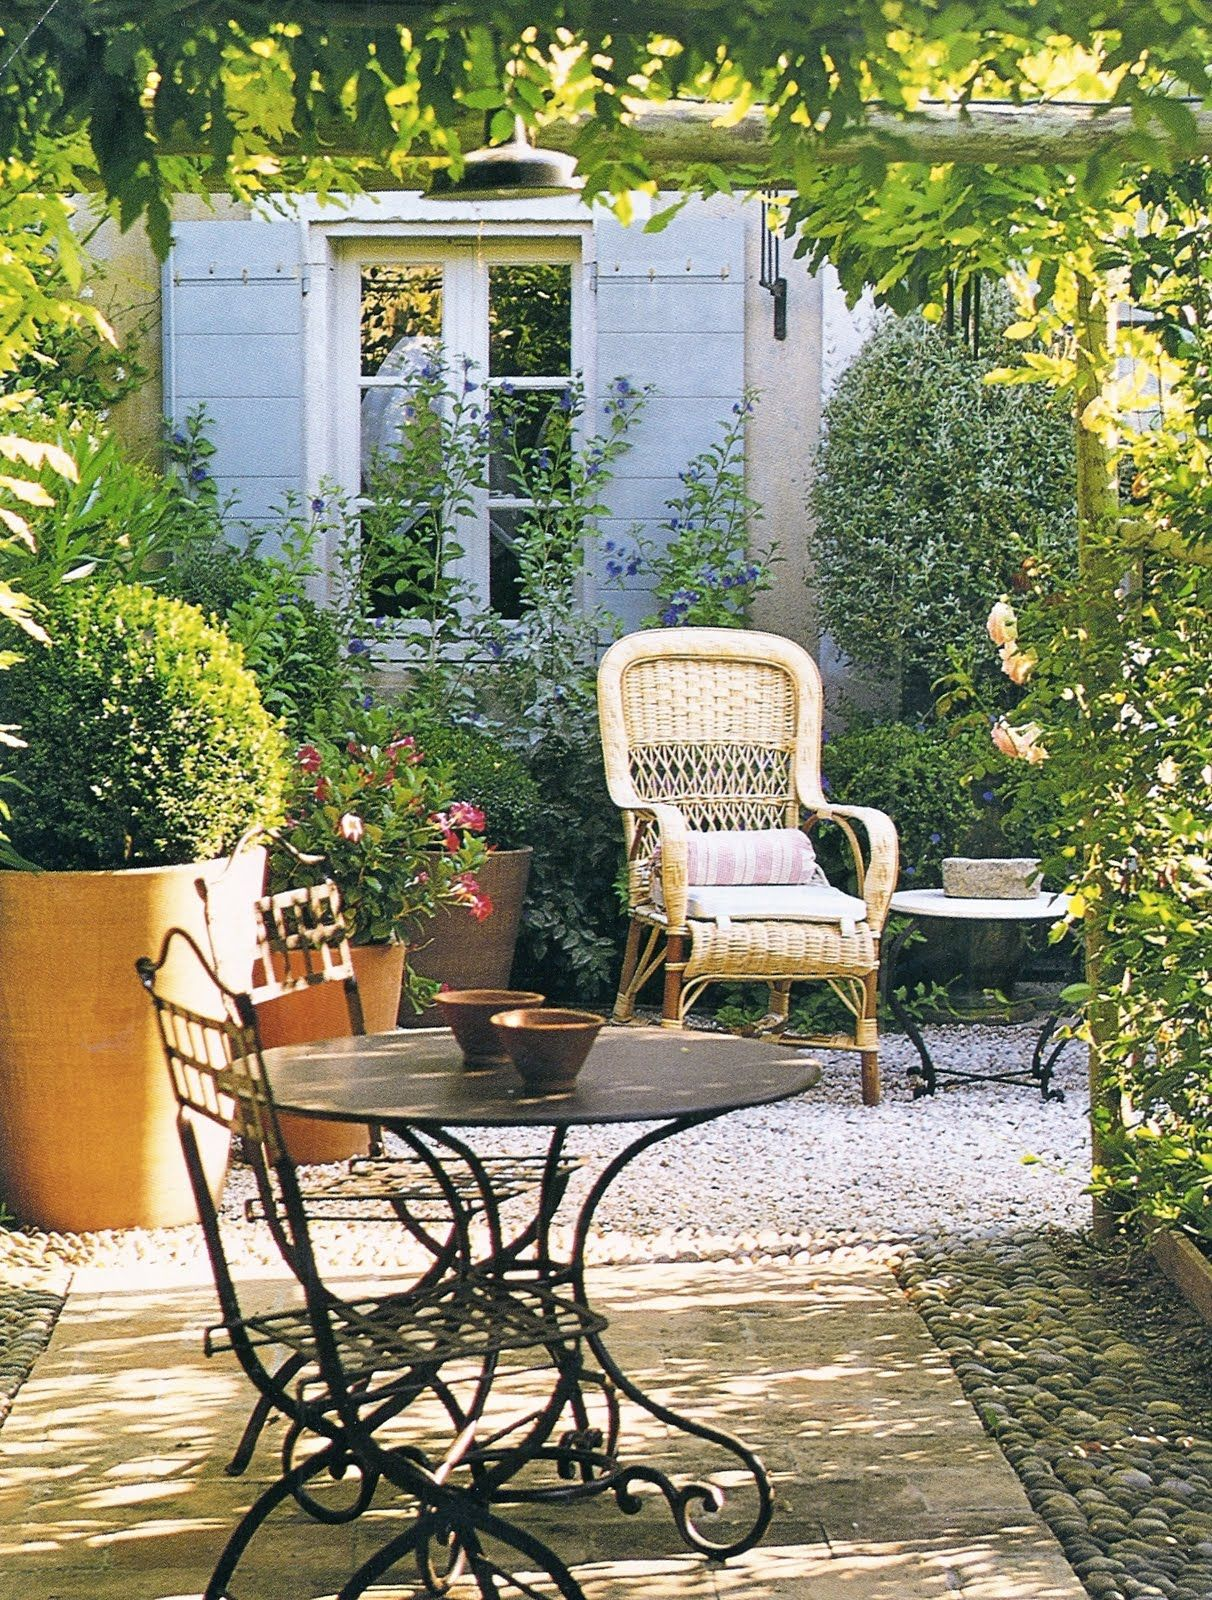 French Quarter Patio Designs Decor 65 Style Decorating Dual Sitting Areas In Garden